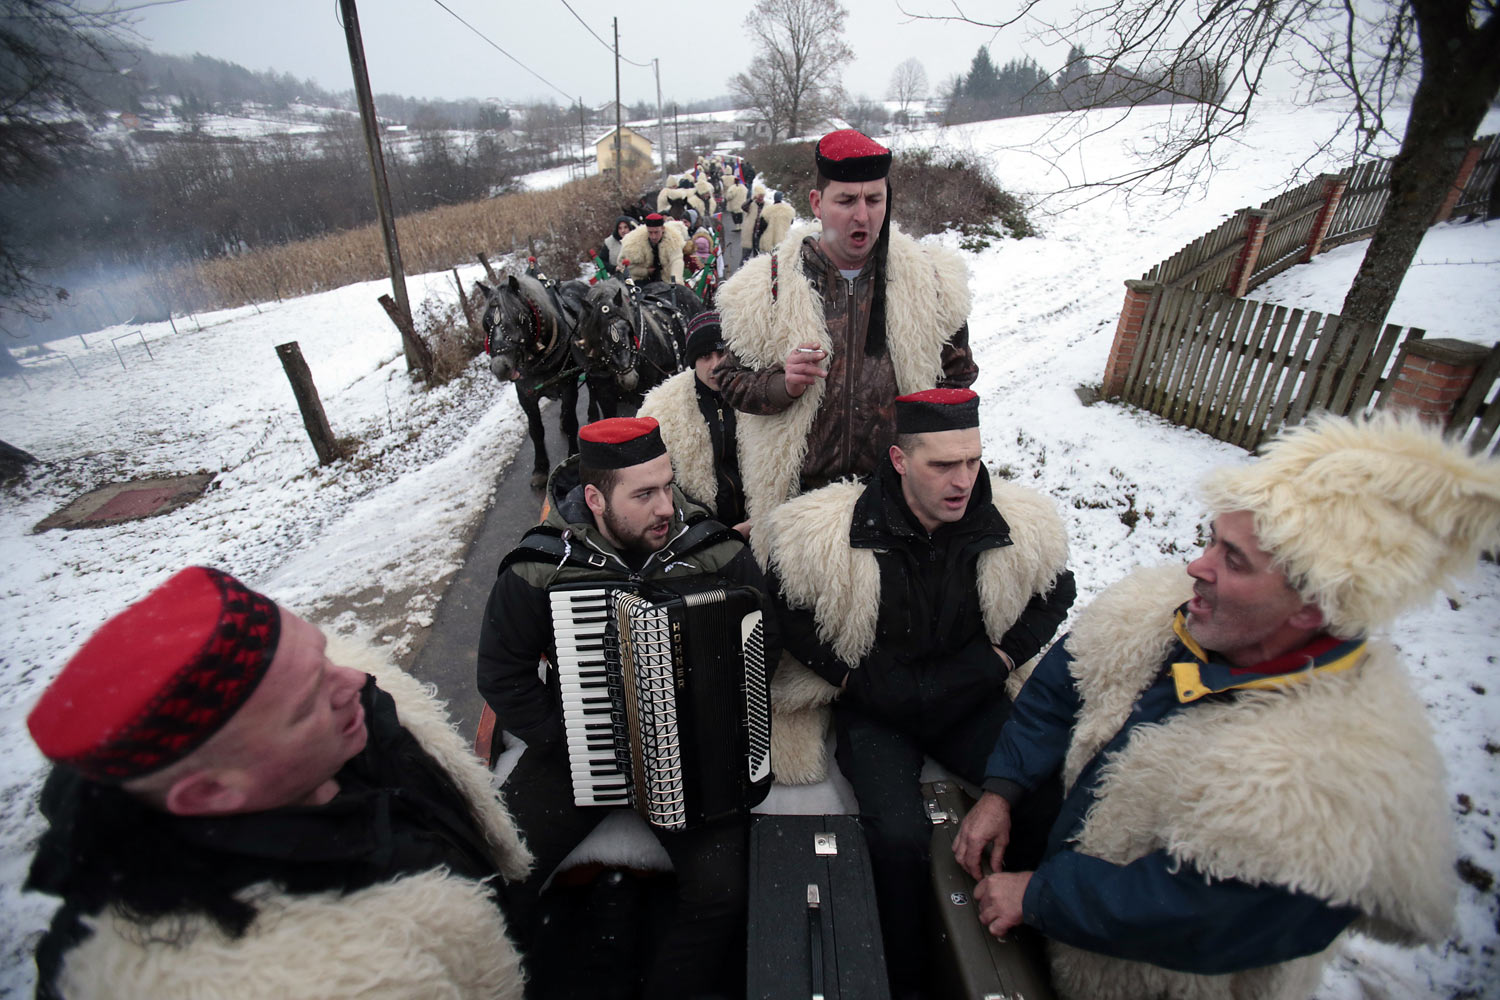 Bosnian Serb men sing and ride horses during a traditional Orthodox Christmas Eve parade, in the village of Glamocani, near Banja Luka, Bosnia, on Sunday, Jan. 6, 2019. Like many other Orthodox Christians around the world, Serbs observe holidays according to the Julian calendar instead of the Gregorian calendar adopted during the 16th century, celebrating Christmas on Jan. 7 instead of Dec. 25. (AP Photo/Amel Emric)